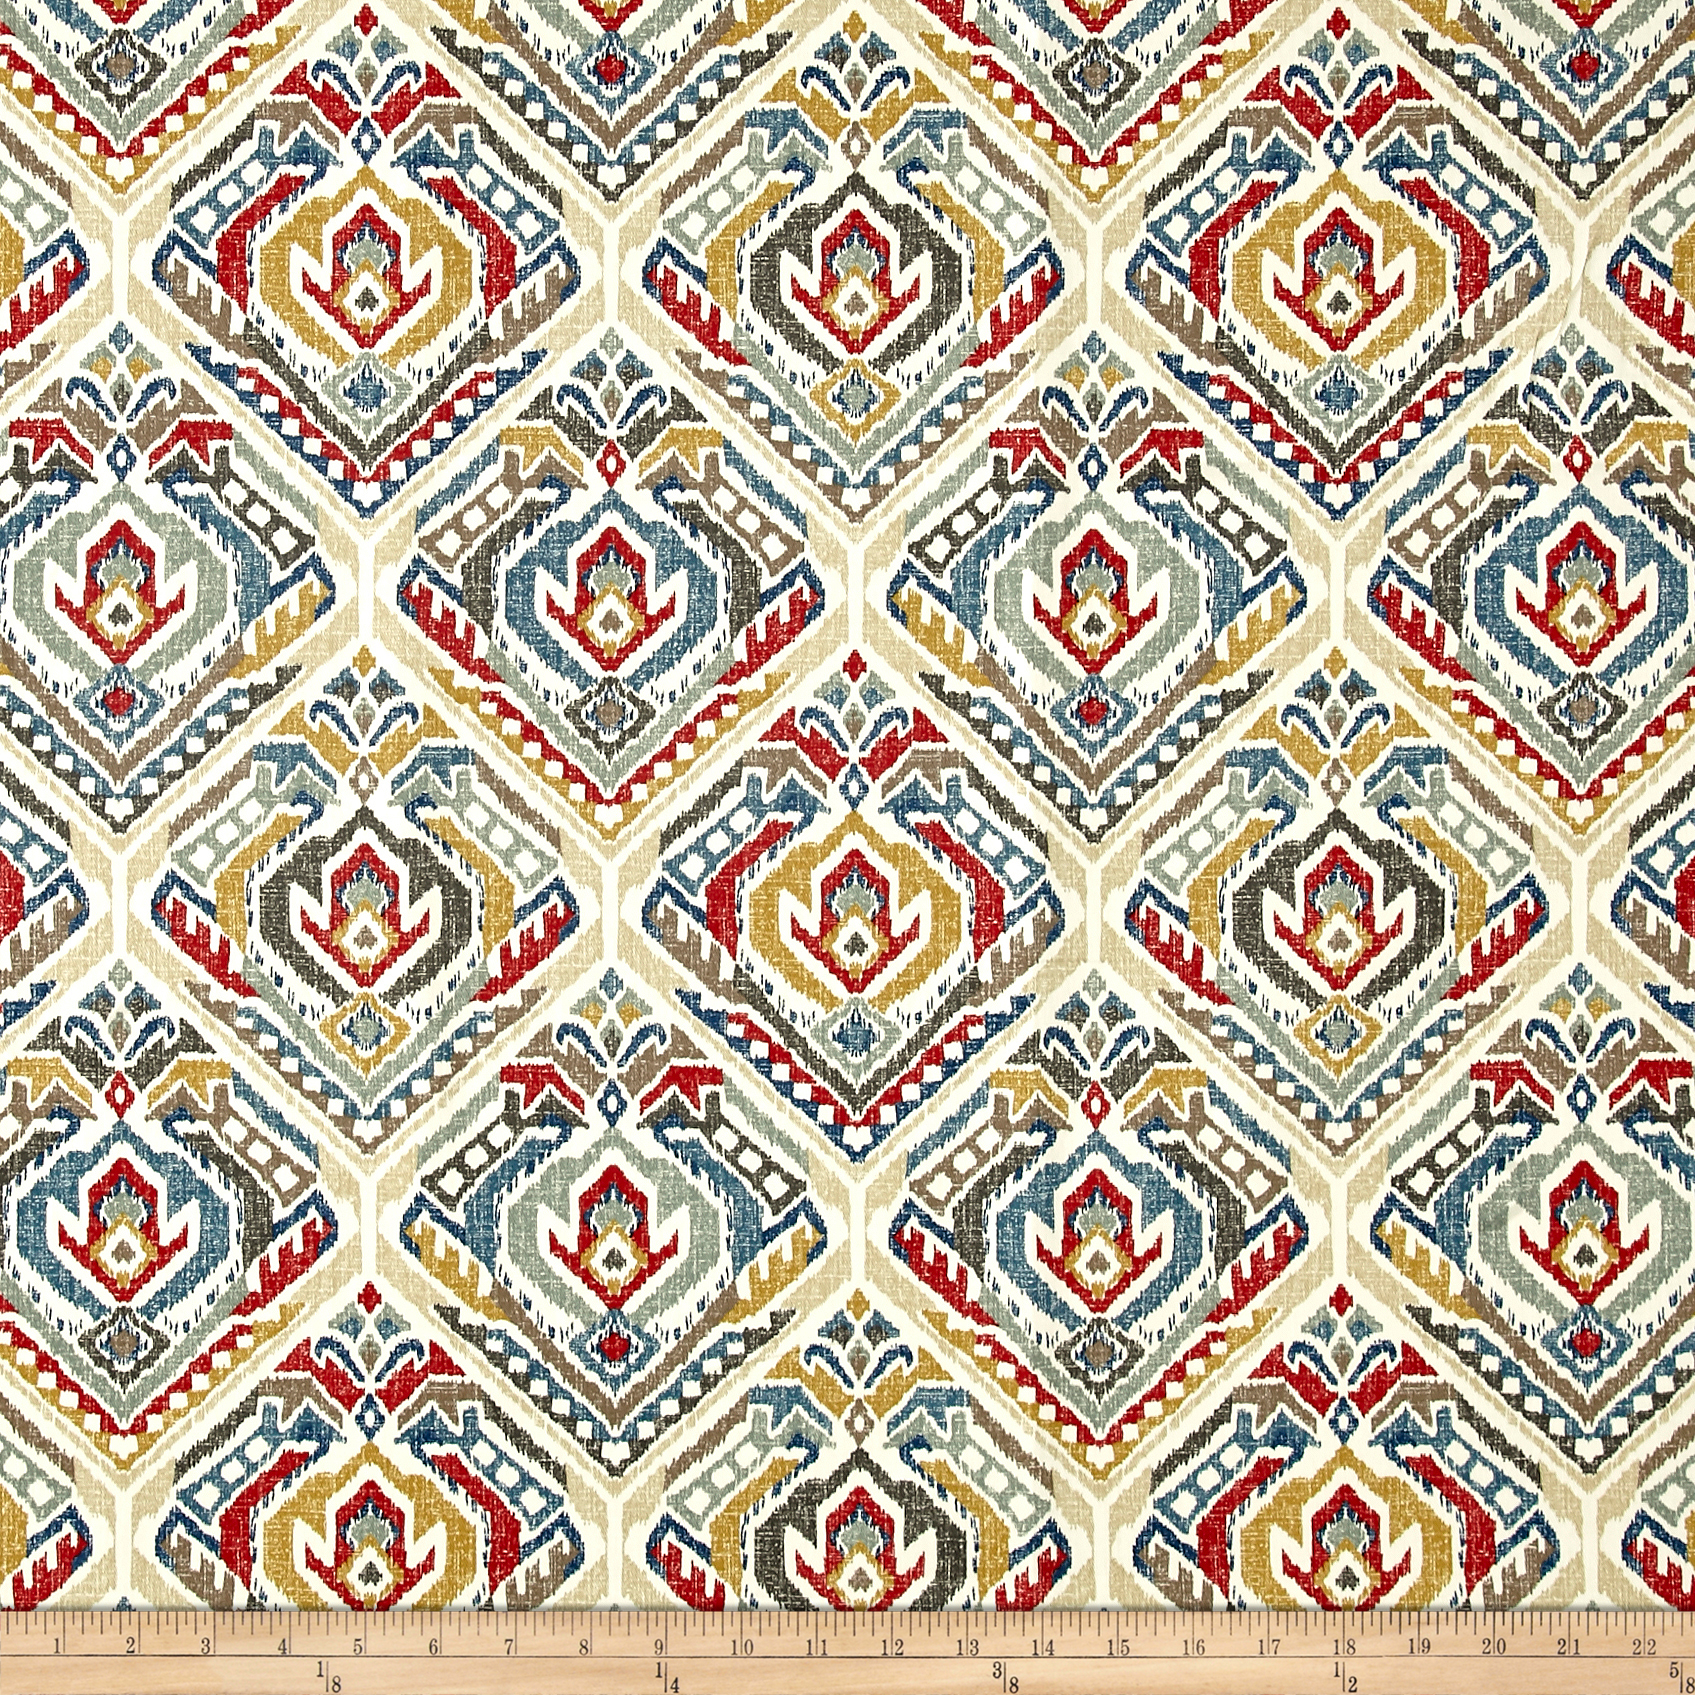 Swavelle/Mill Creek Tombo Cajun Fabric by Swavelle Mill Creek in USA